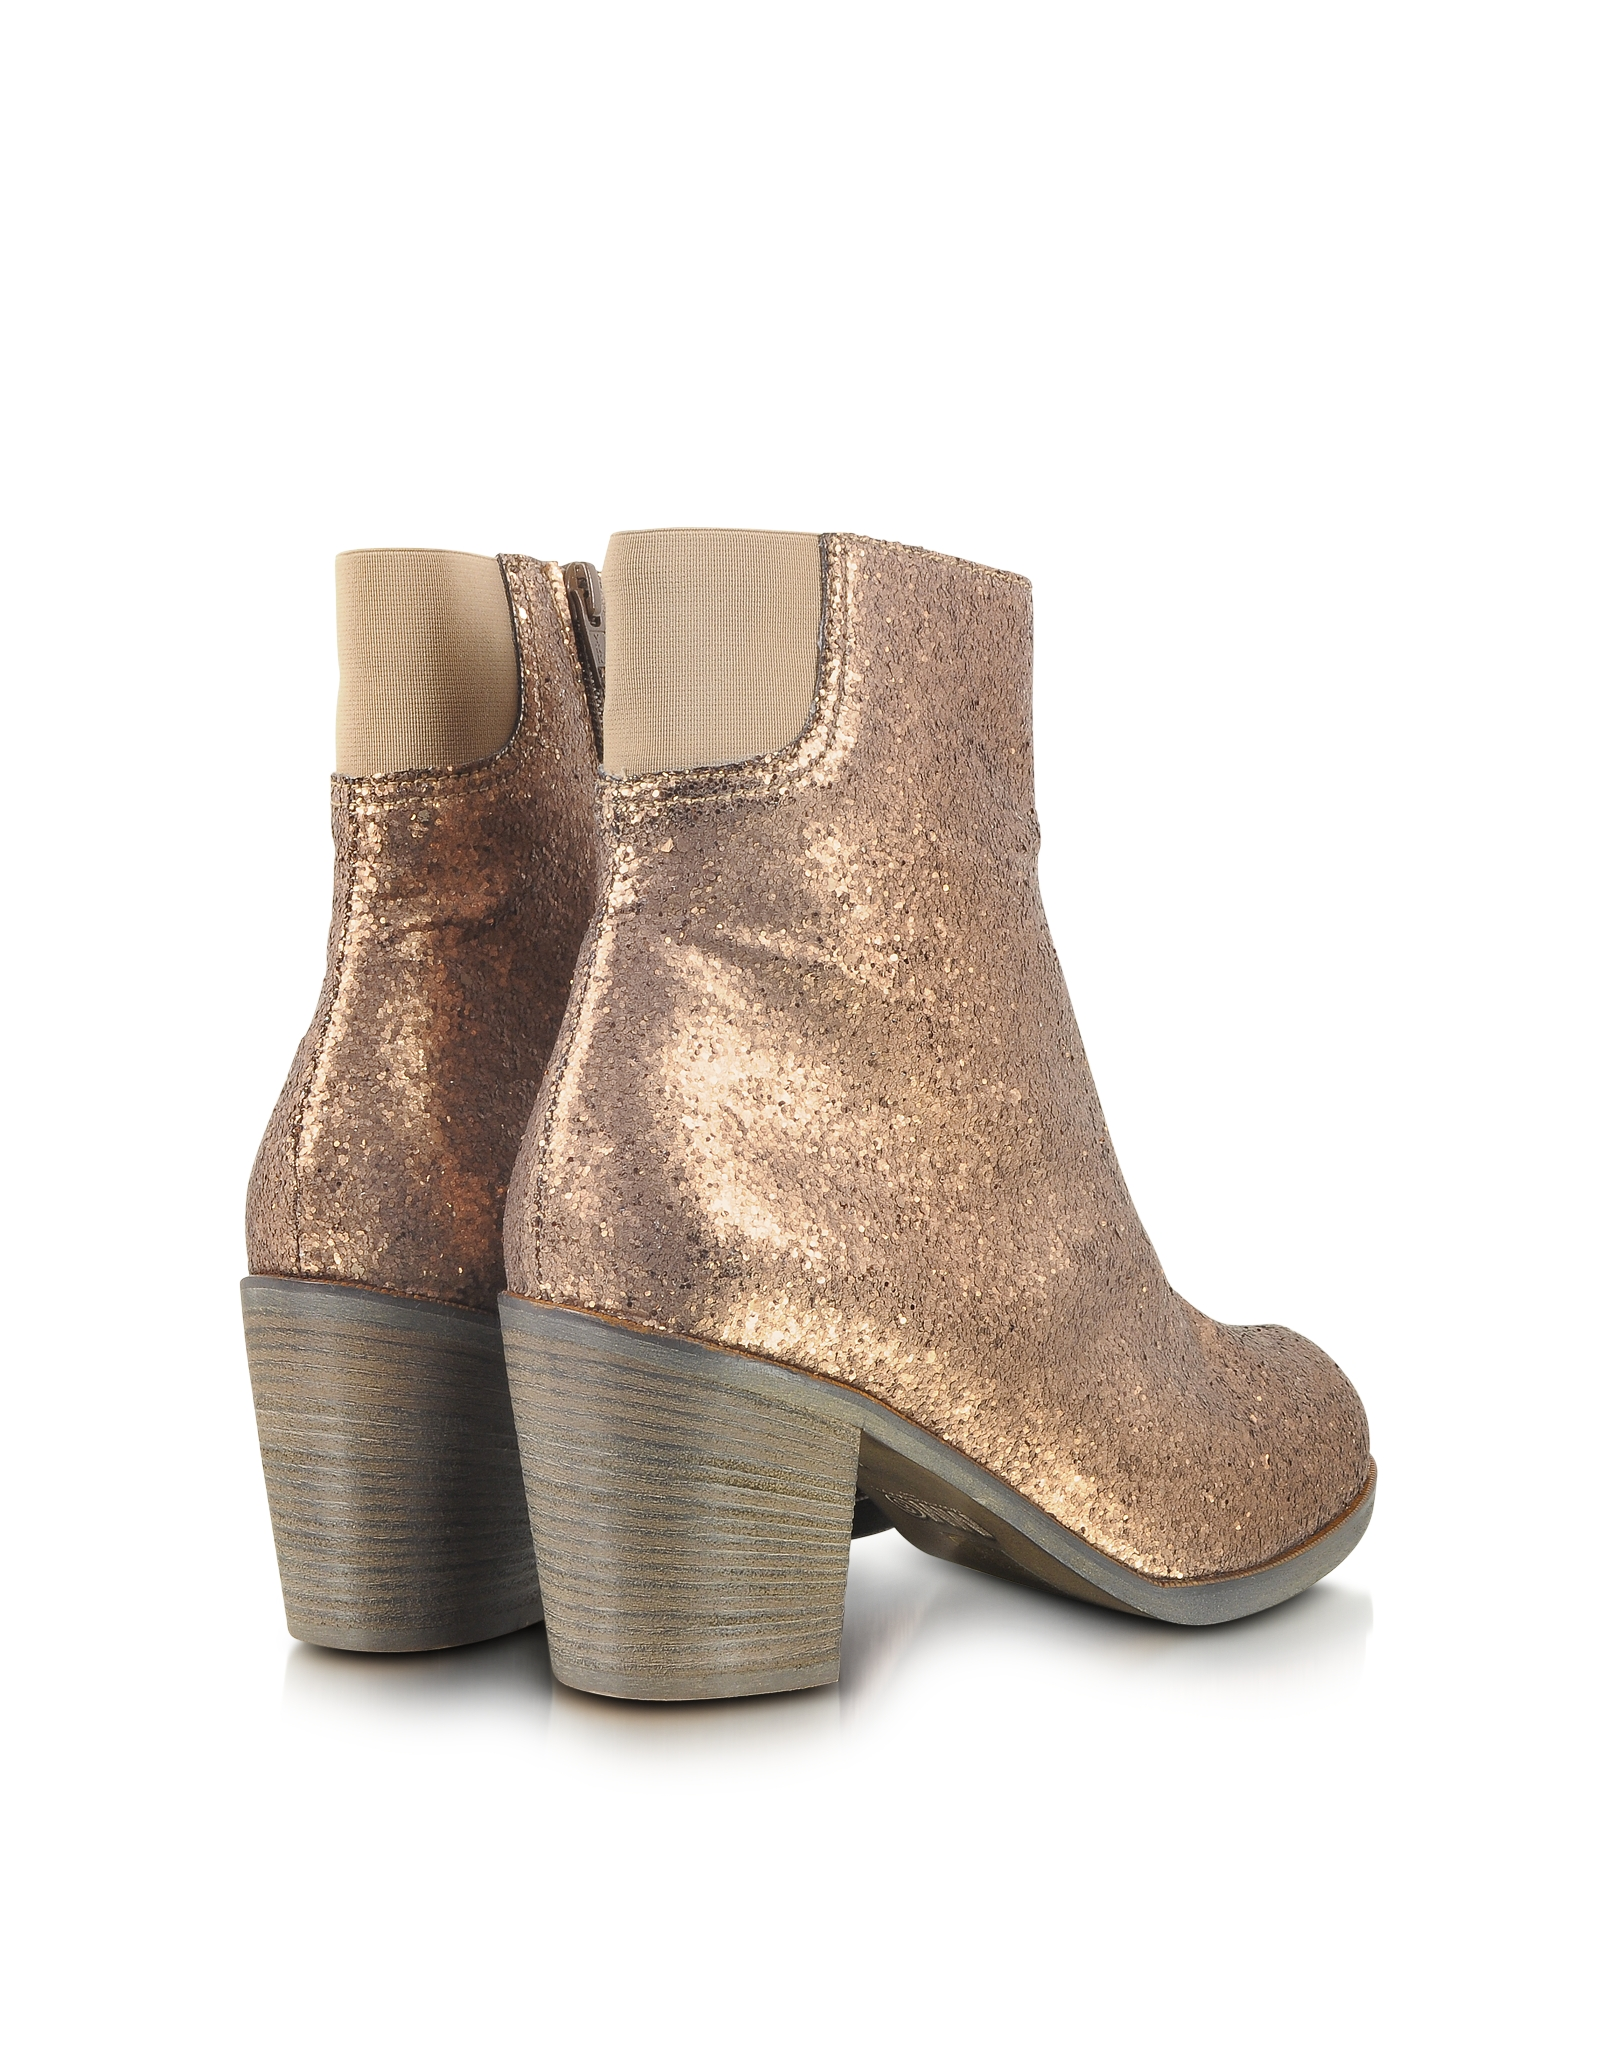 mm6 by maison martin margiela glitter ankle boot in